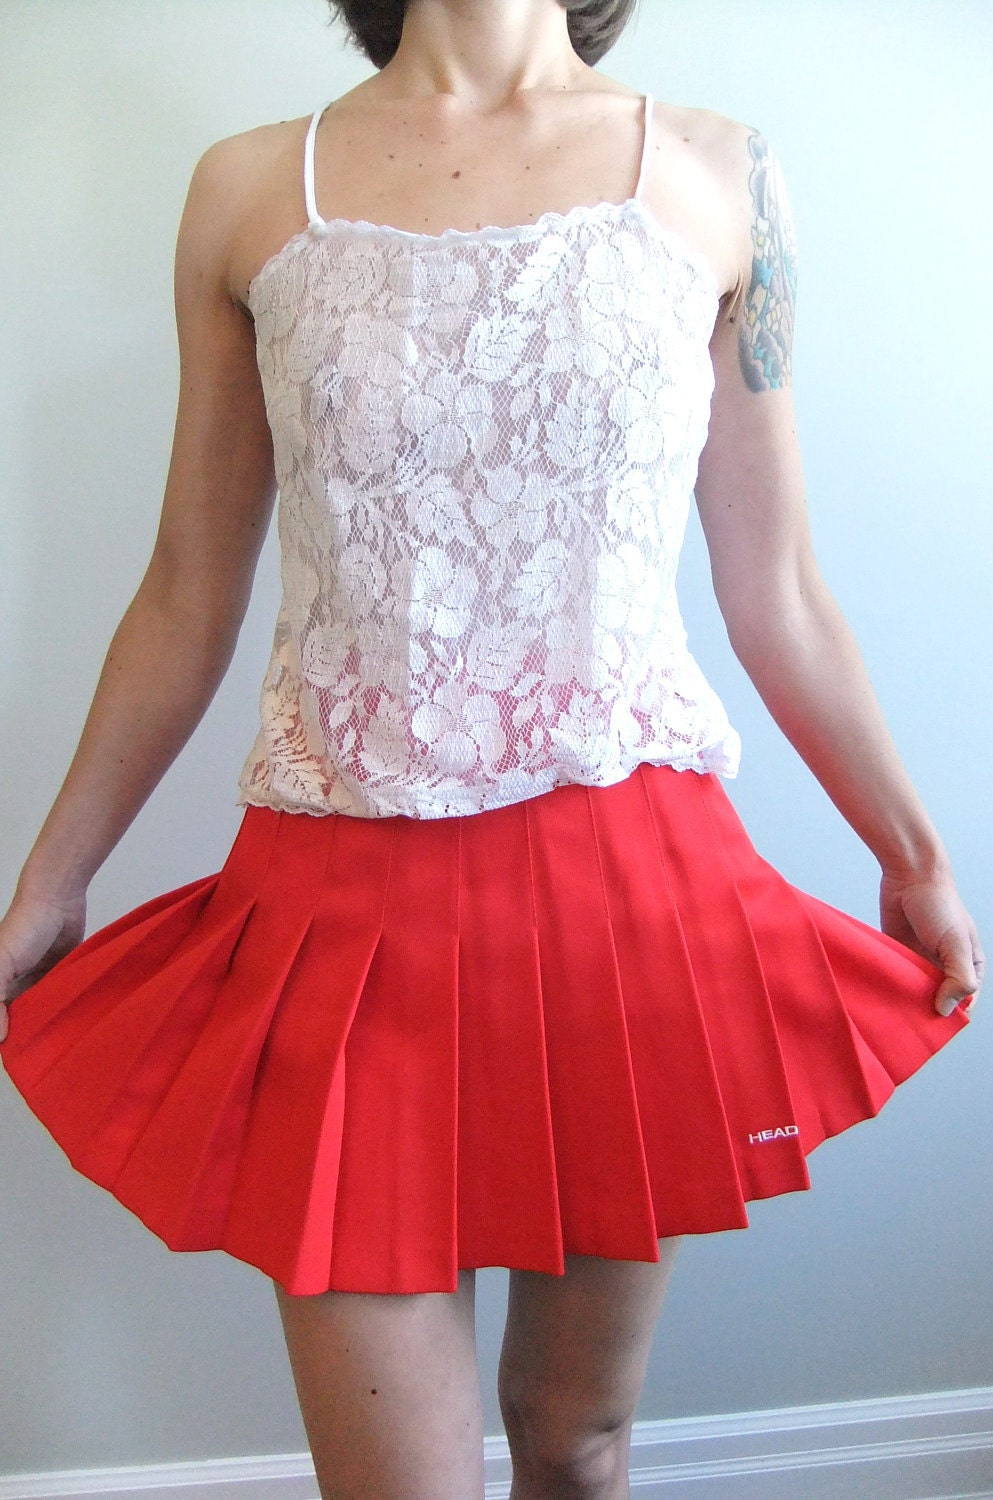 red pleated mini skirt 80s tennis skirt by HEAD size small